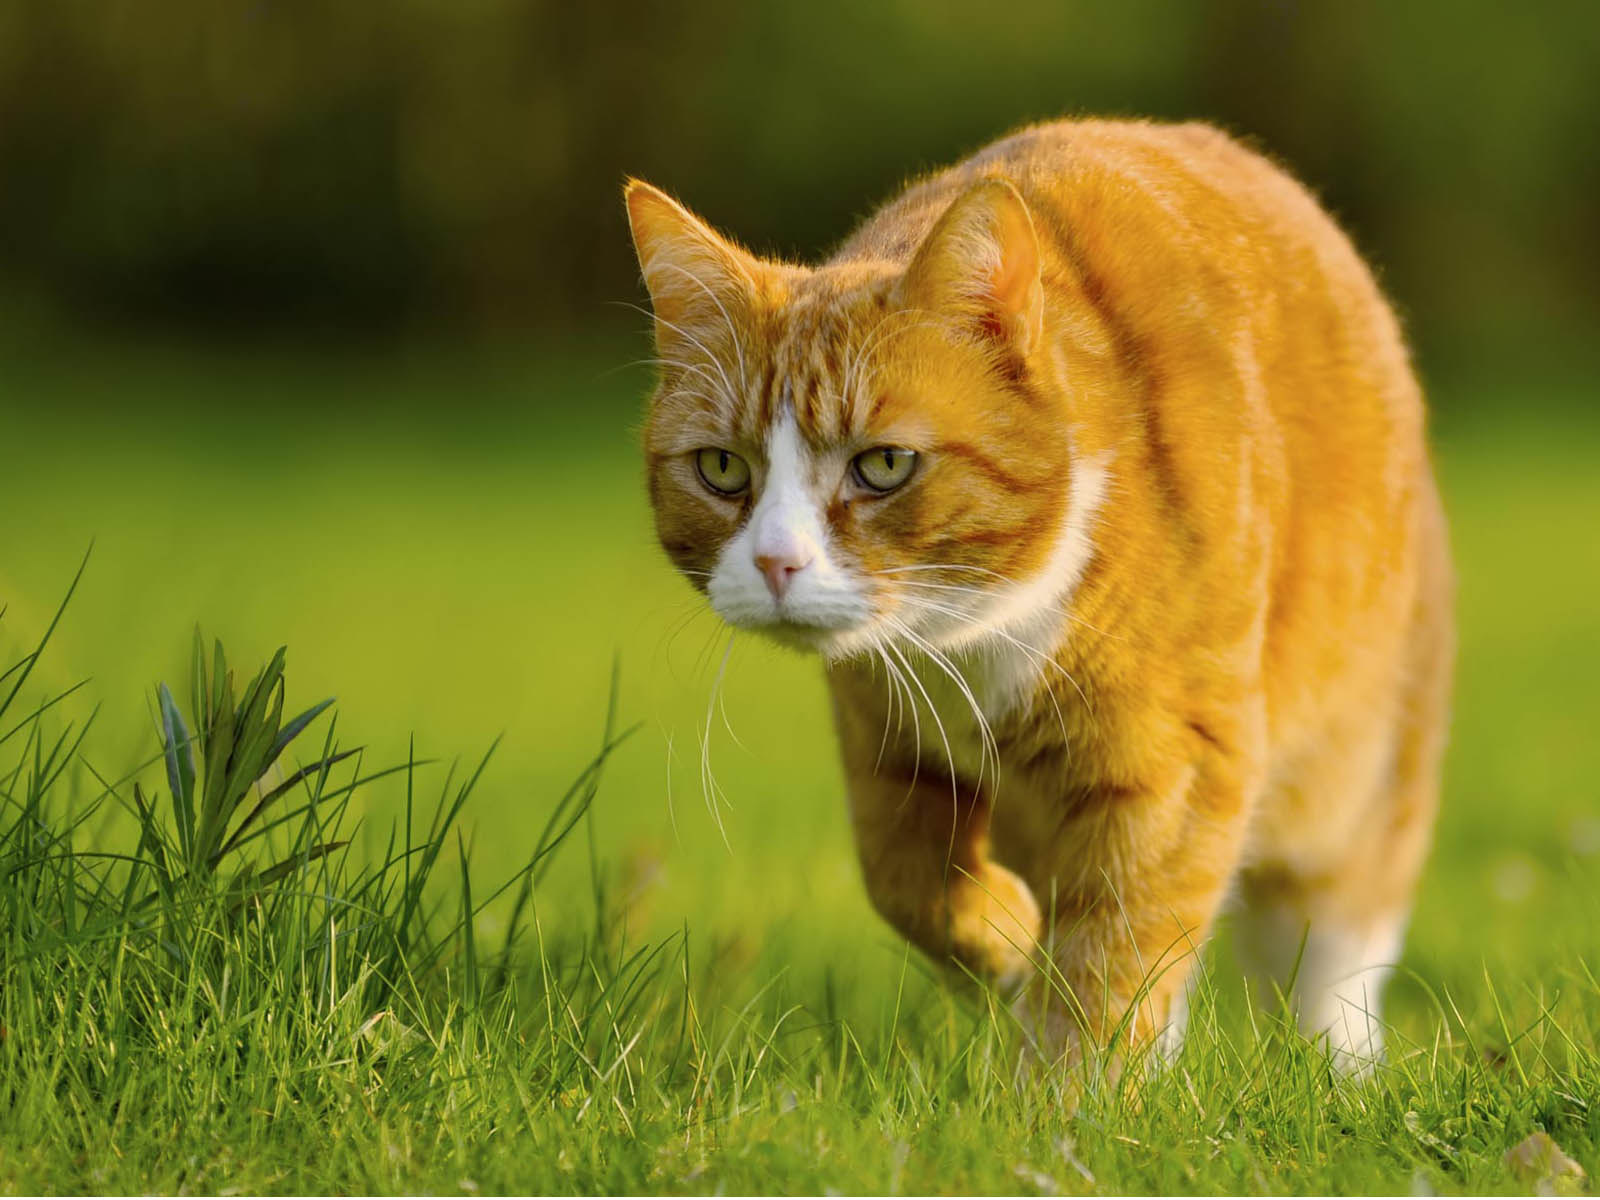 wallpapers Hunting Cat Wallpapers 1600x1200